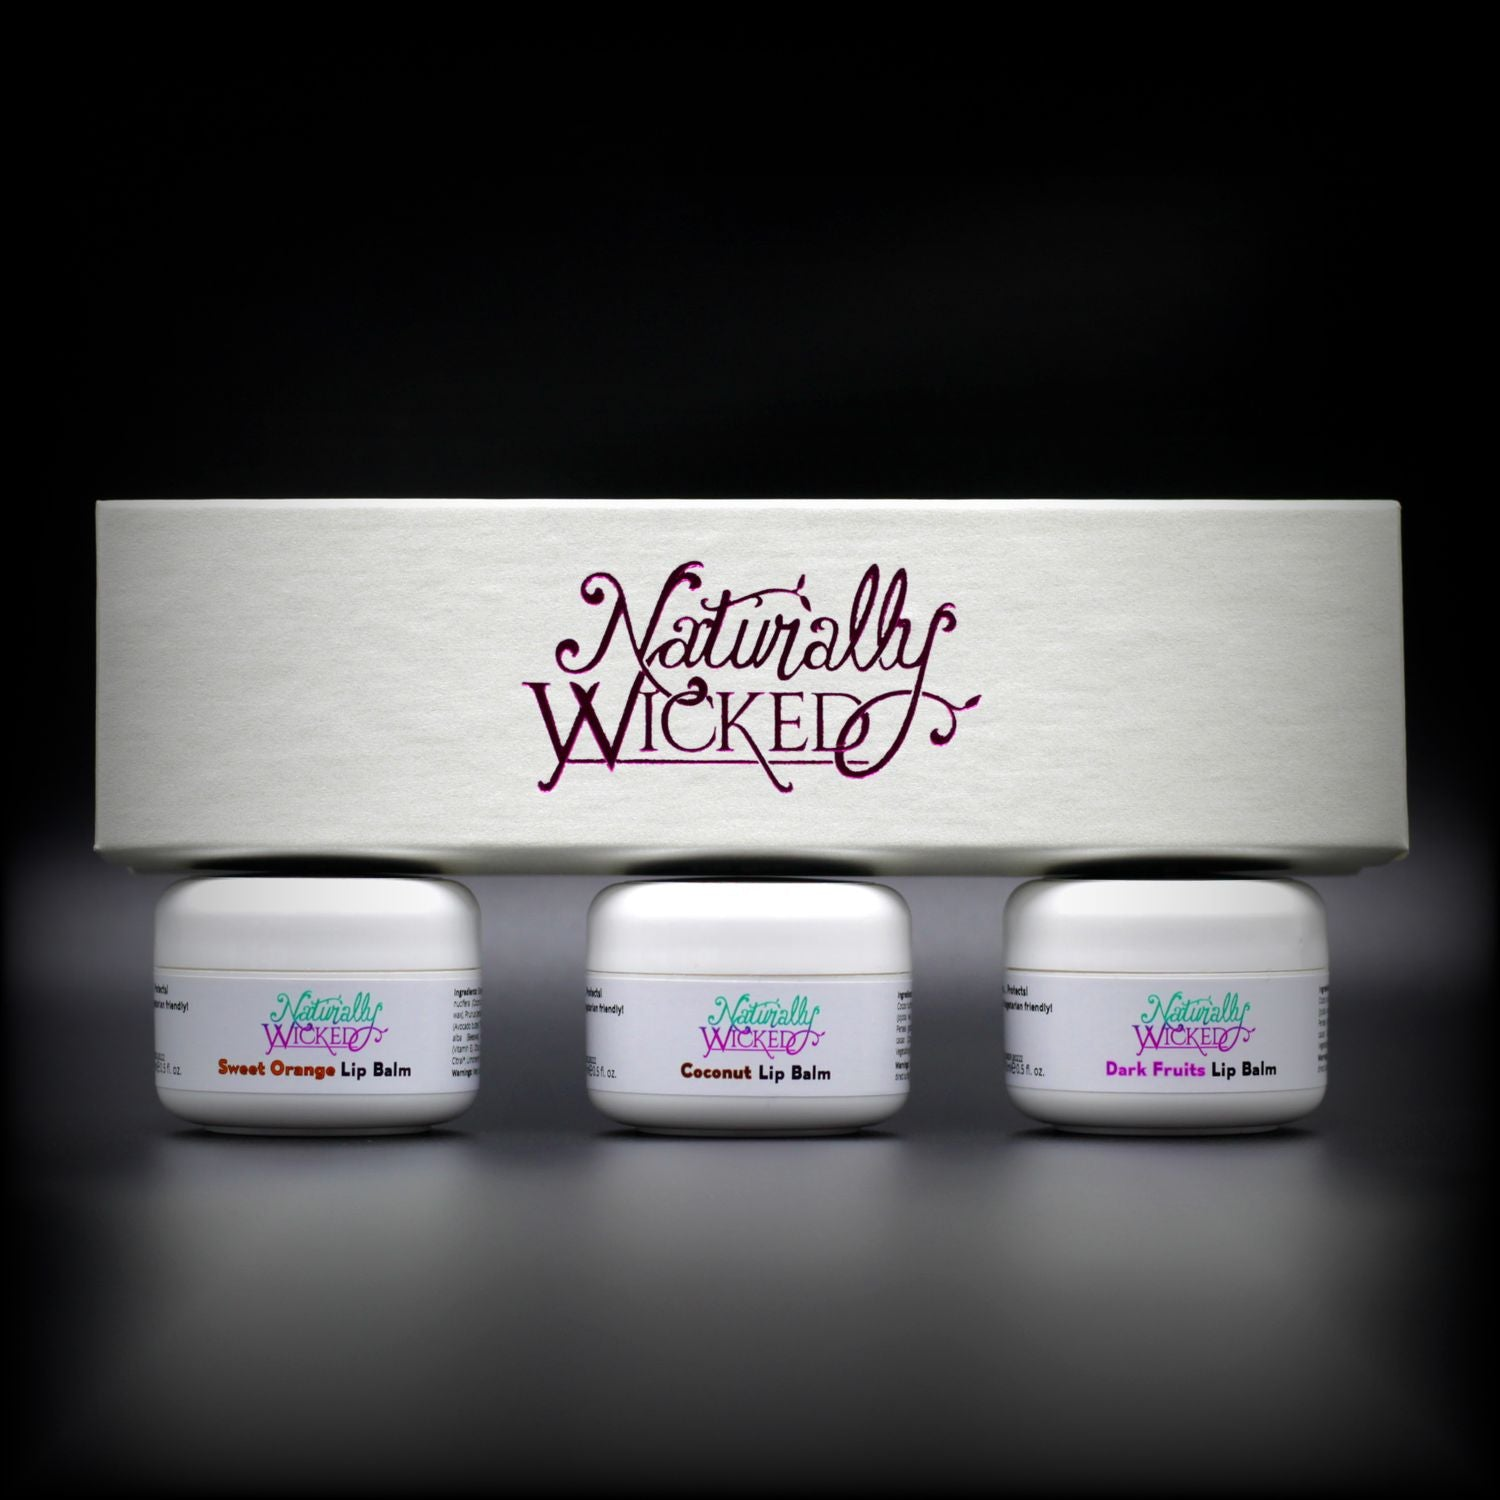 Naturally Wicked Lip Balm Trio Box On Top Of 3 Luxury Fruit Filled White Lip Balm Containers; Coconut, Dark Fruits & Sweet Orange